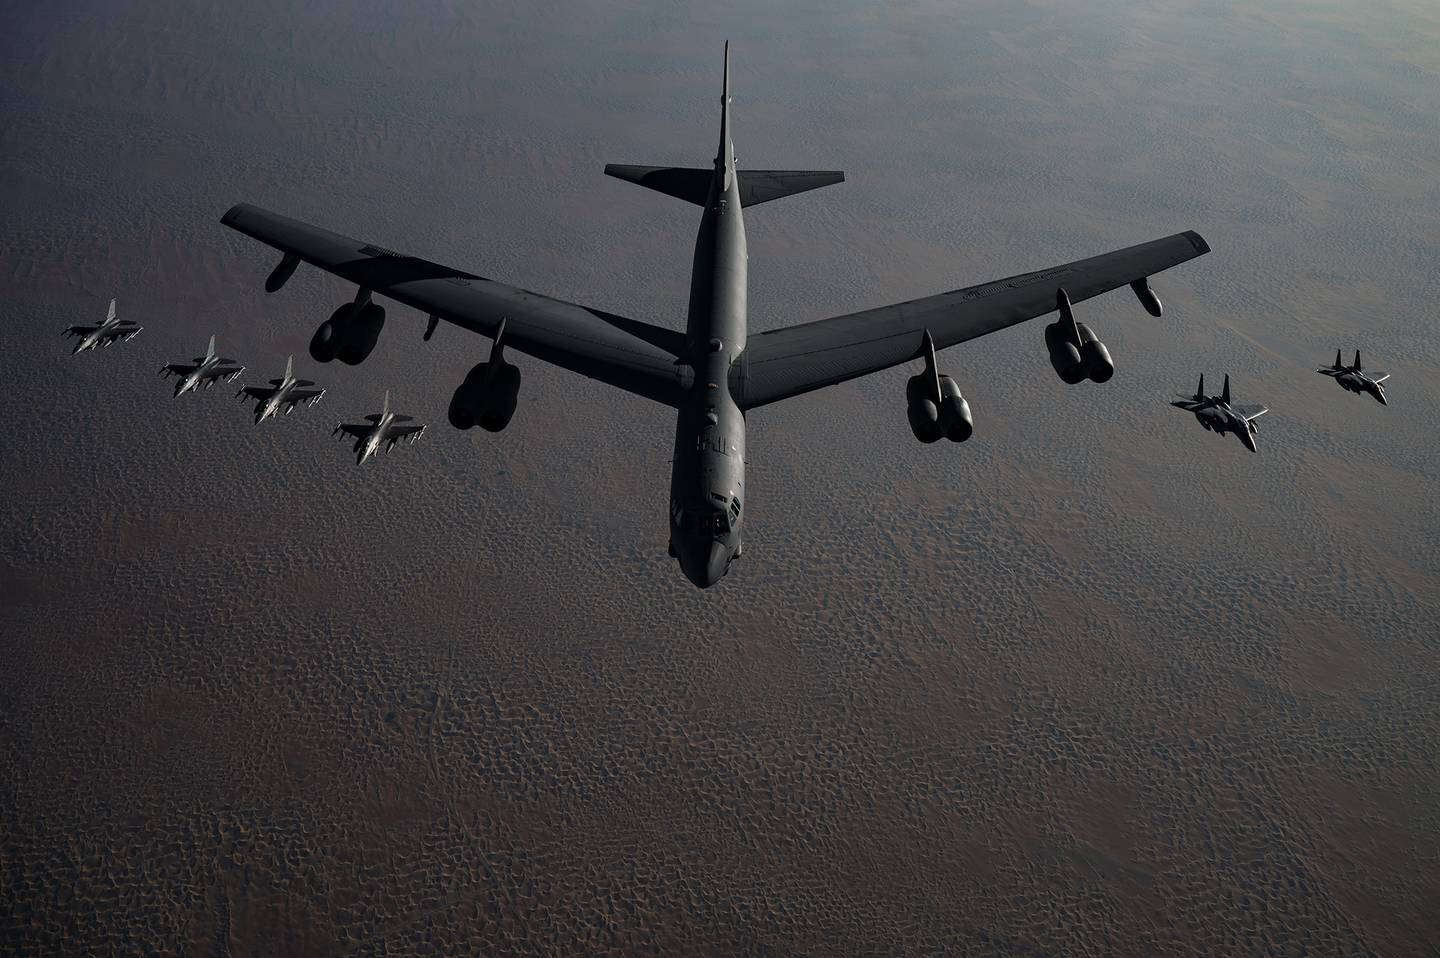 A B-52 Stratofortress flies in formation with F-16 Fighting Falcons and F-15E Strike Eagles during a Bomber Task Force mission over the U.S. Central Command area of responsibility, Nov. 21, 2020.